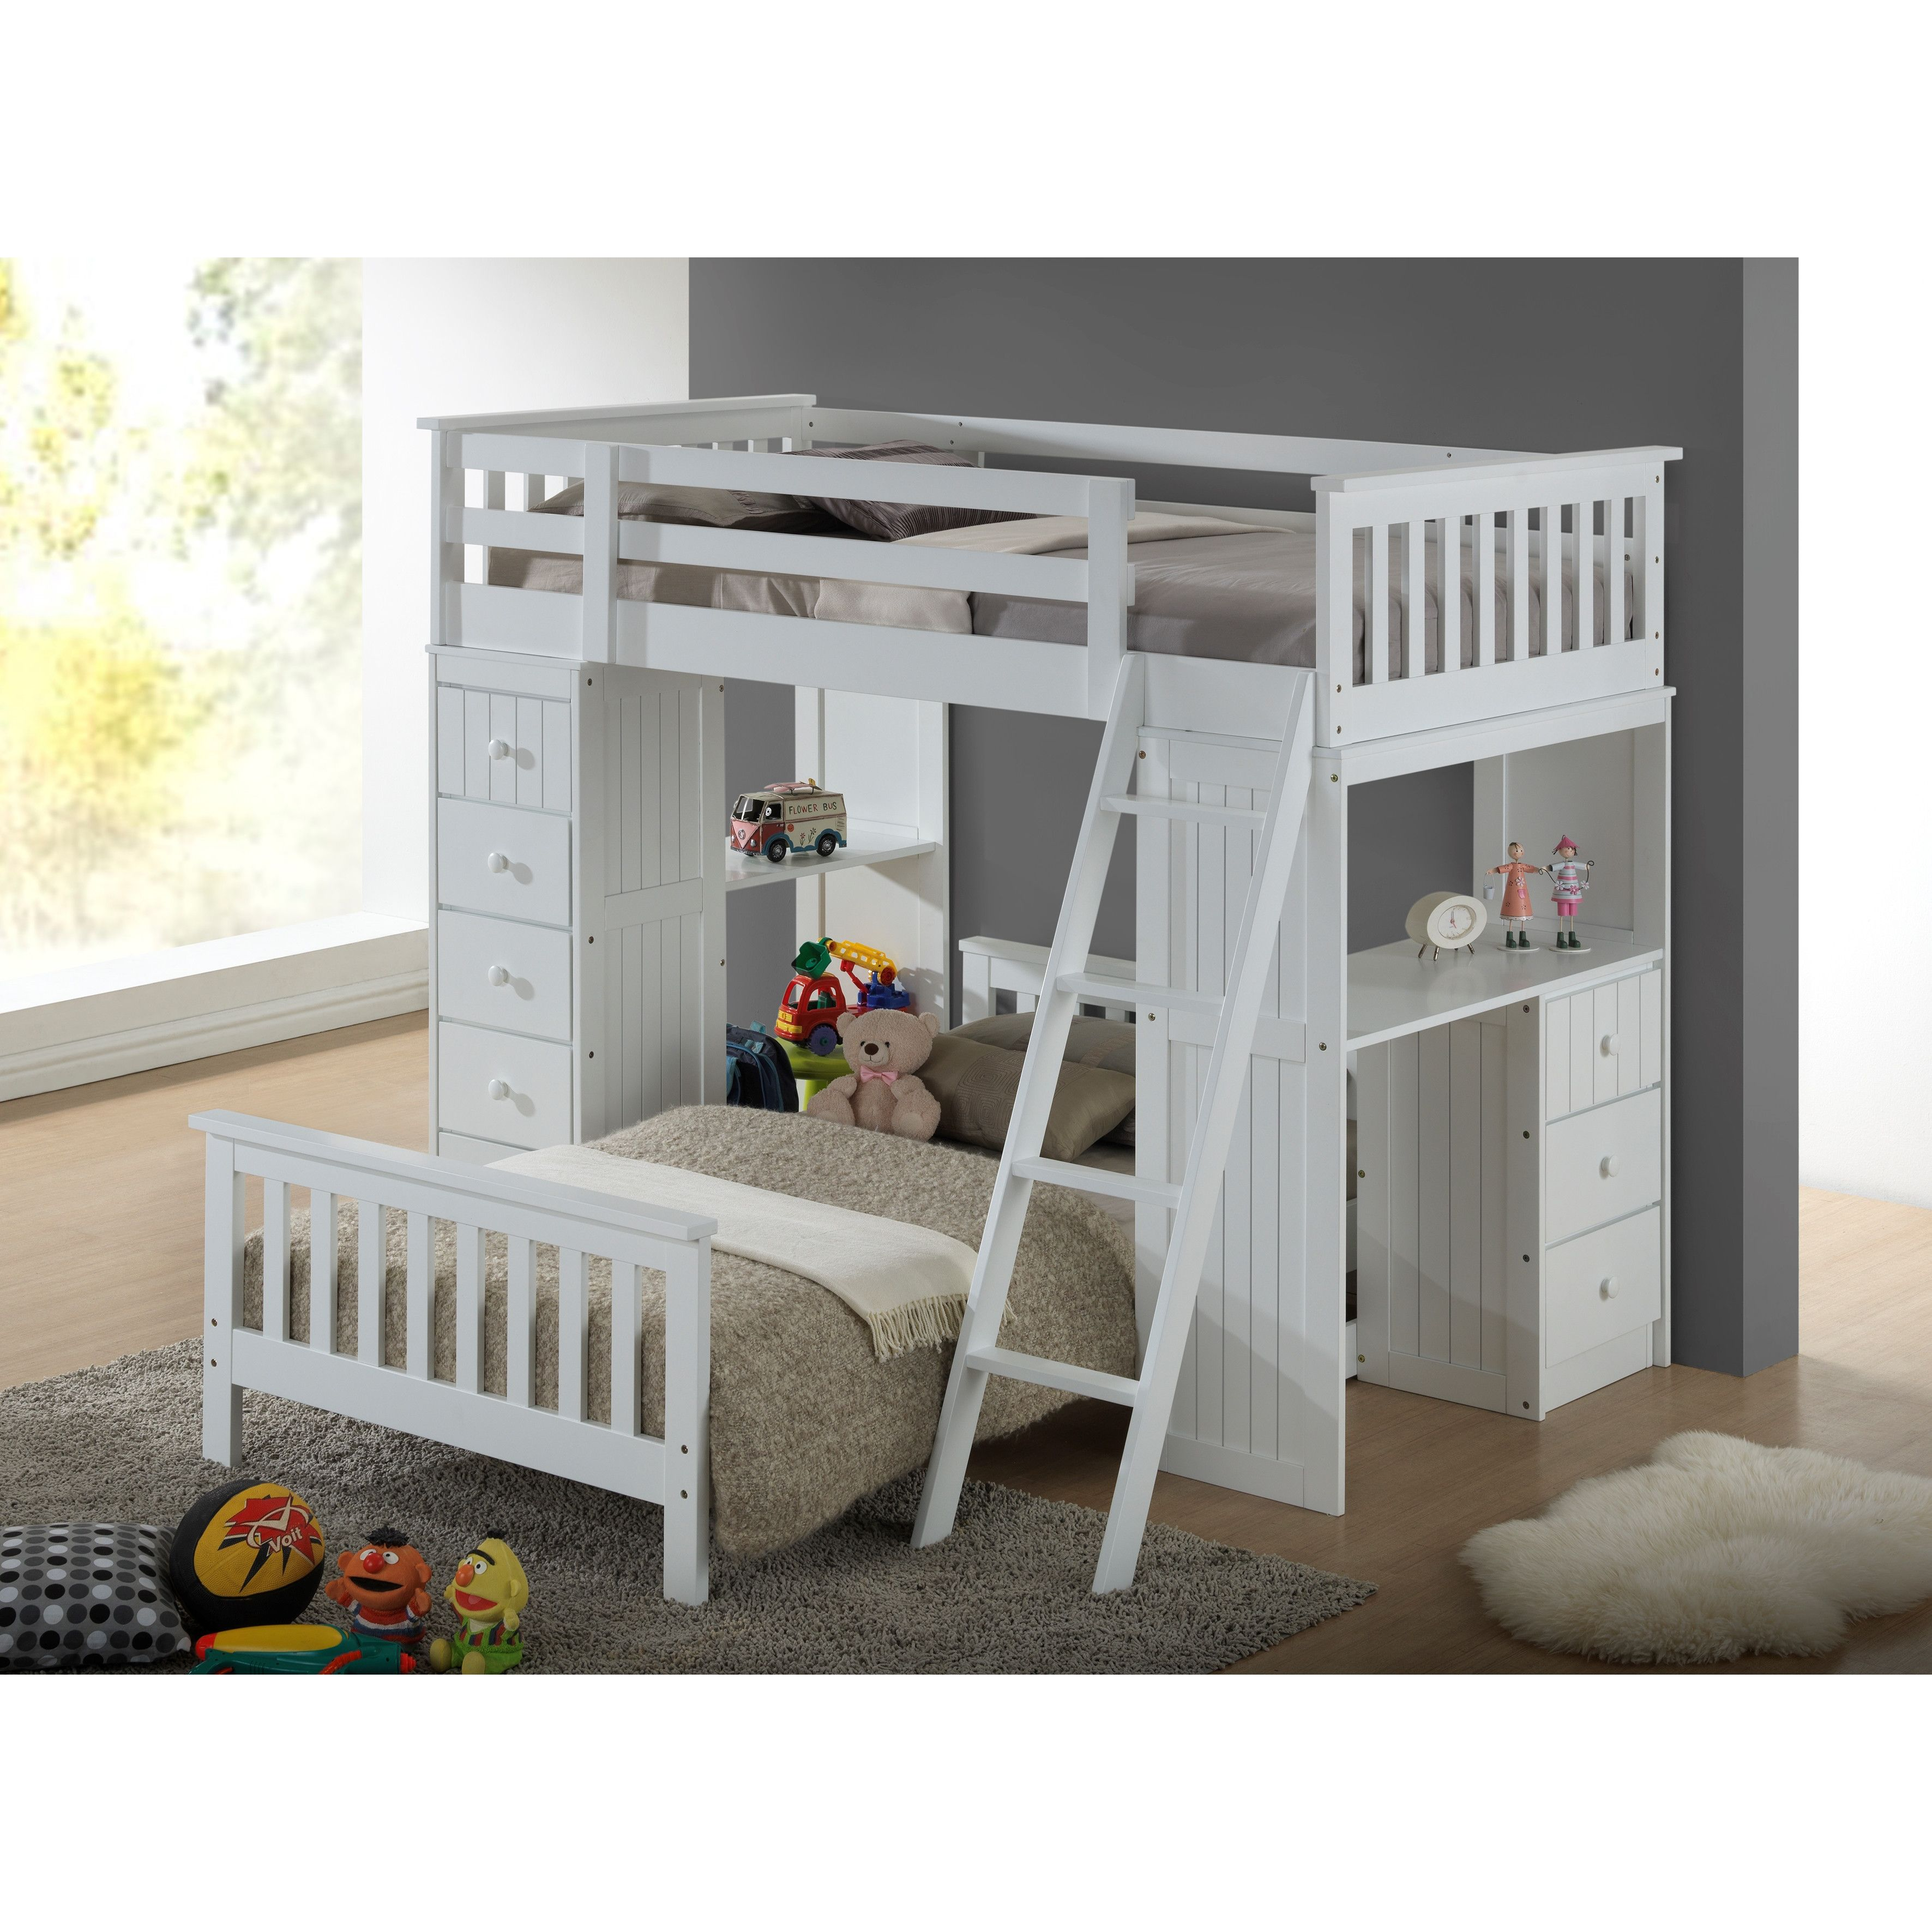 Broyhill Kids Marco Island Twin L Shaped Bunk Bed With Storage For